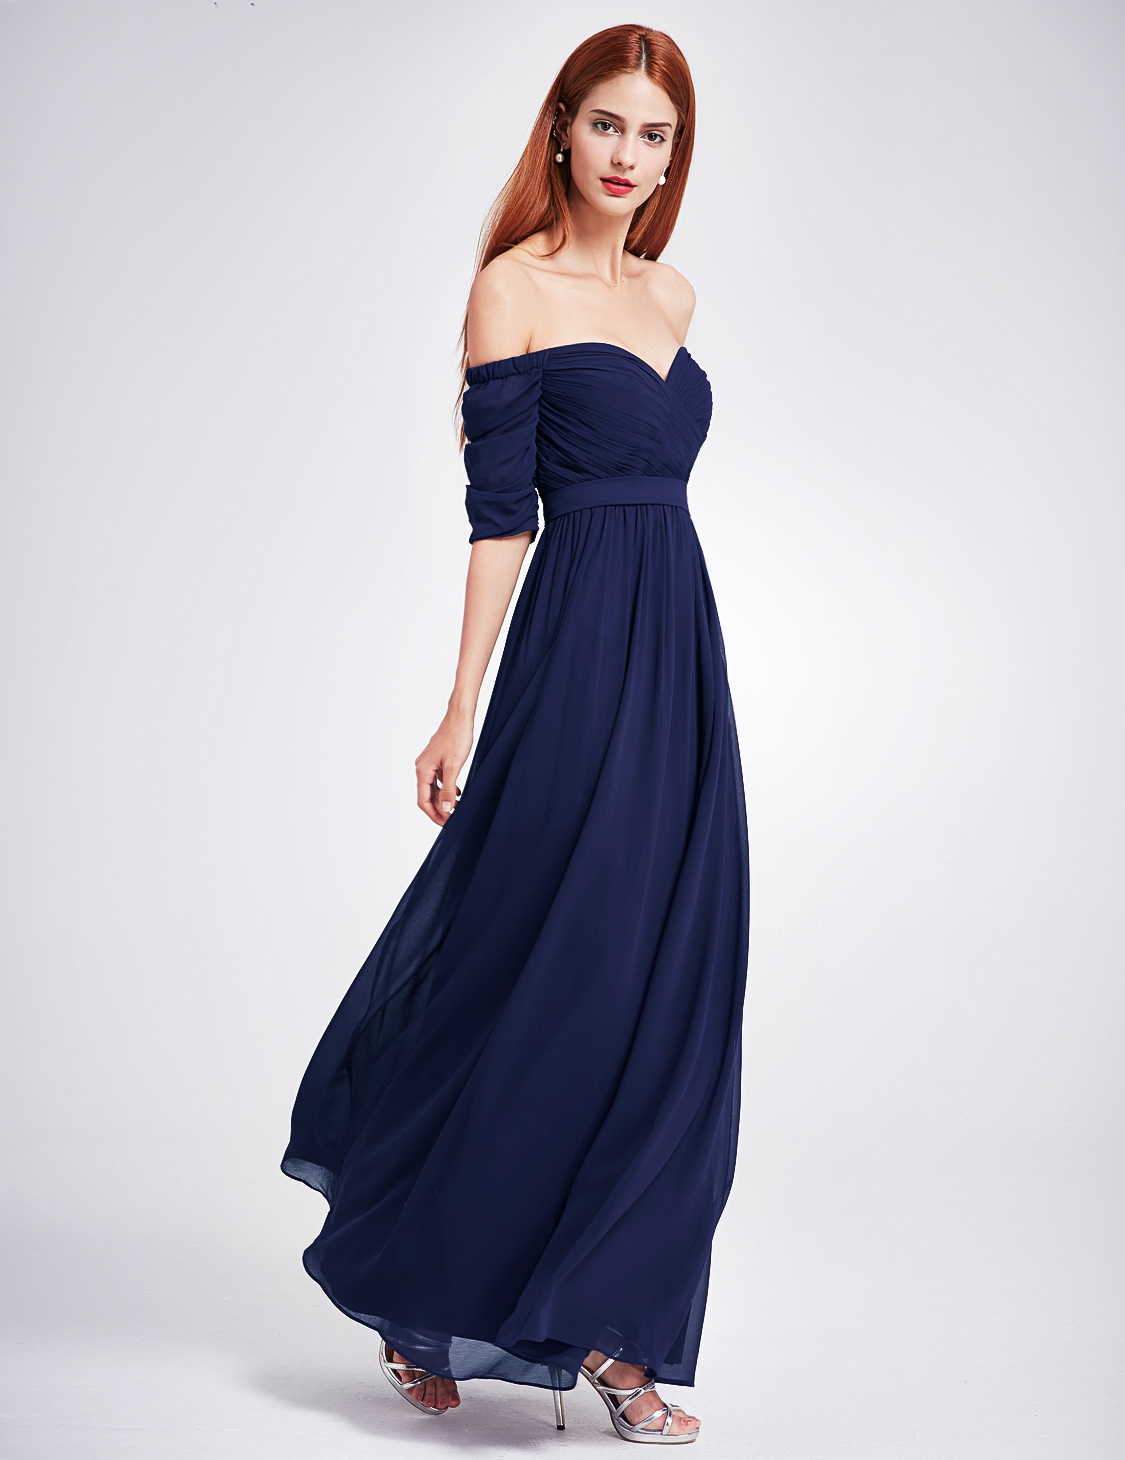 elegant maxi dresses for weddings uk women s shoulder prom bridesmaid wedding maxi 3853